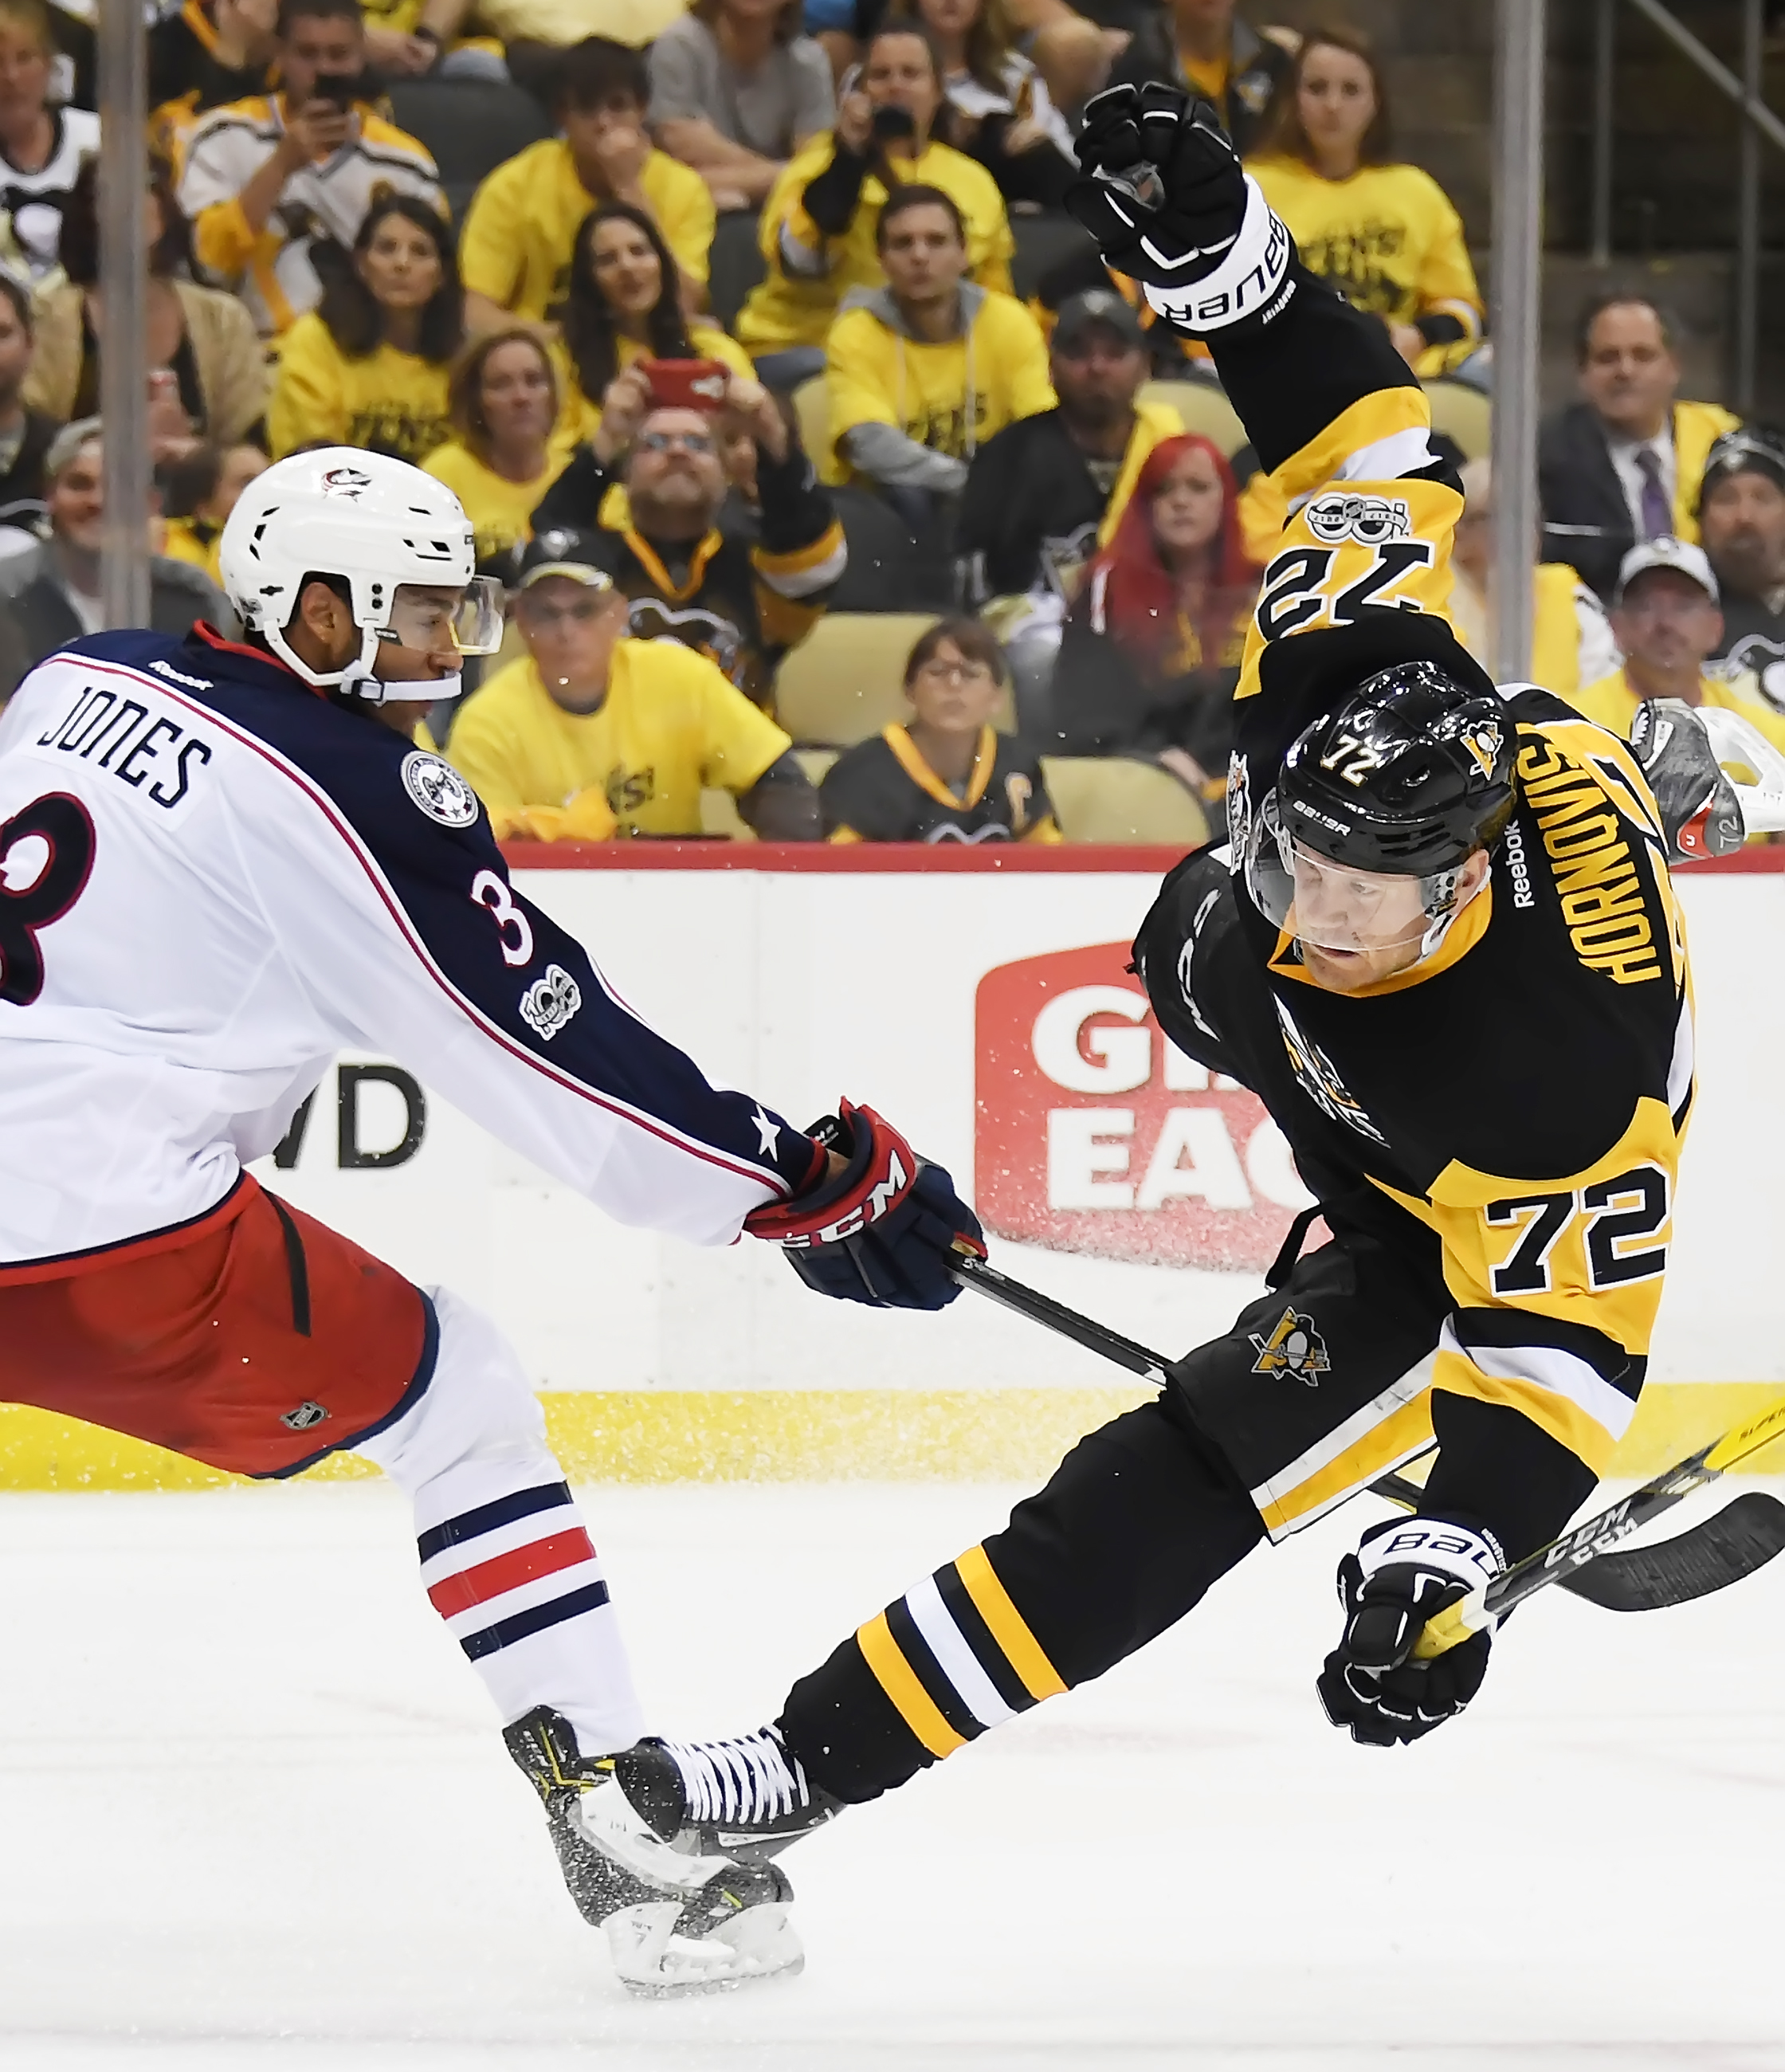 Matt Calvert Viciously Cheap-Shots Tom Kuhnhackl Late In Penguins-Blue Jackets